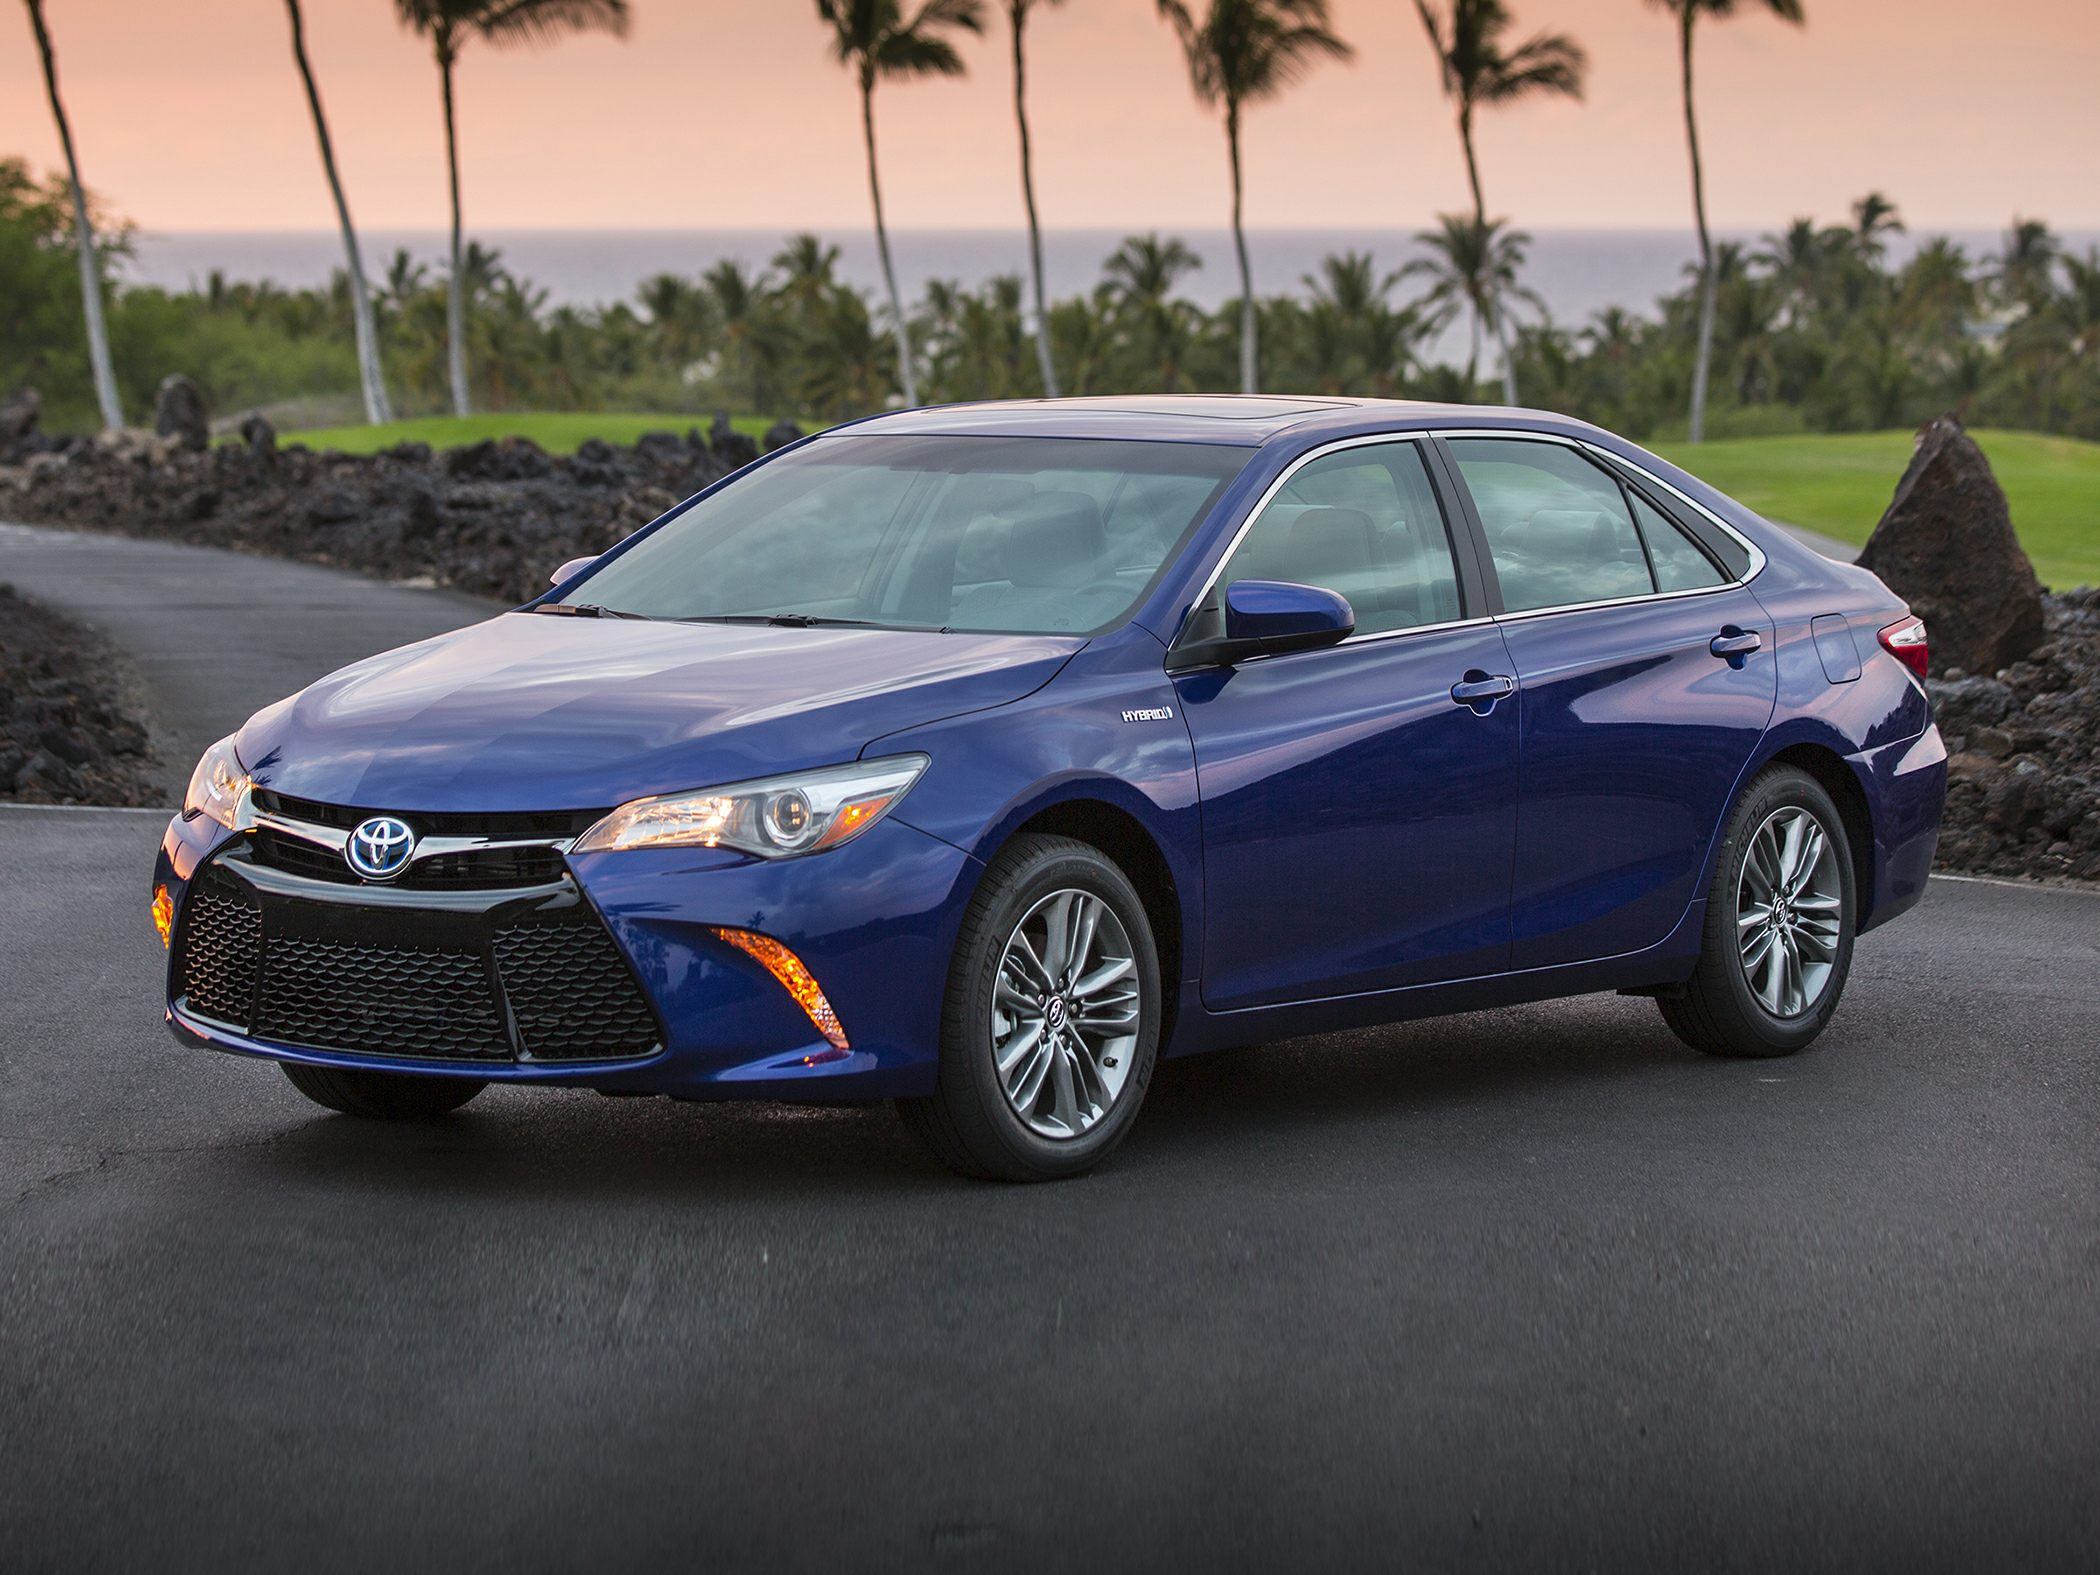 2017 toyota camry hybrid deals prices incentives leases overview carsdirect. Black Bedroom Furniture Sets. Home Design Ideas